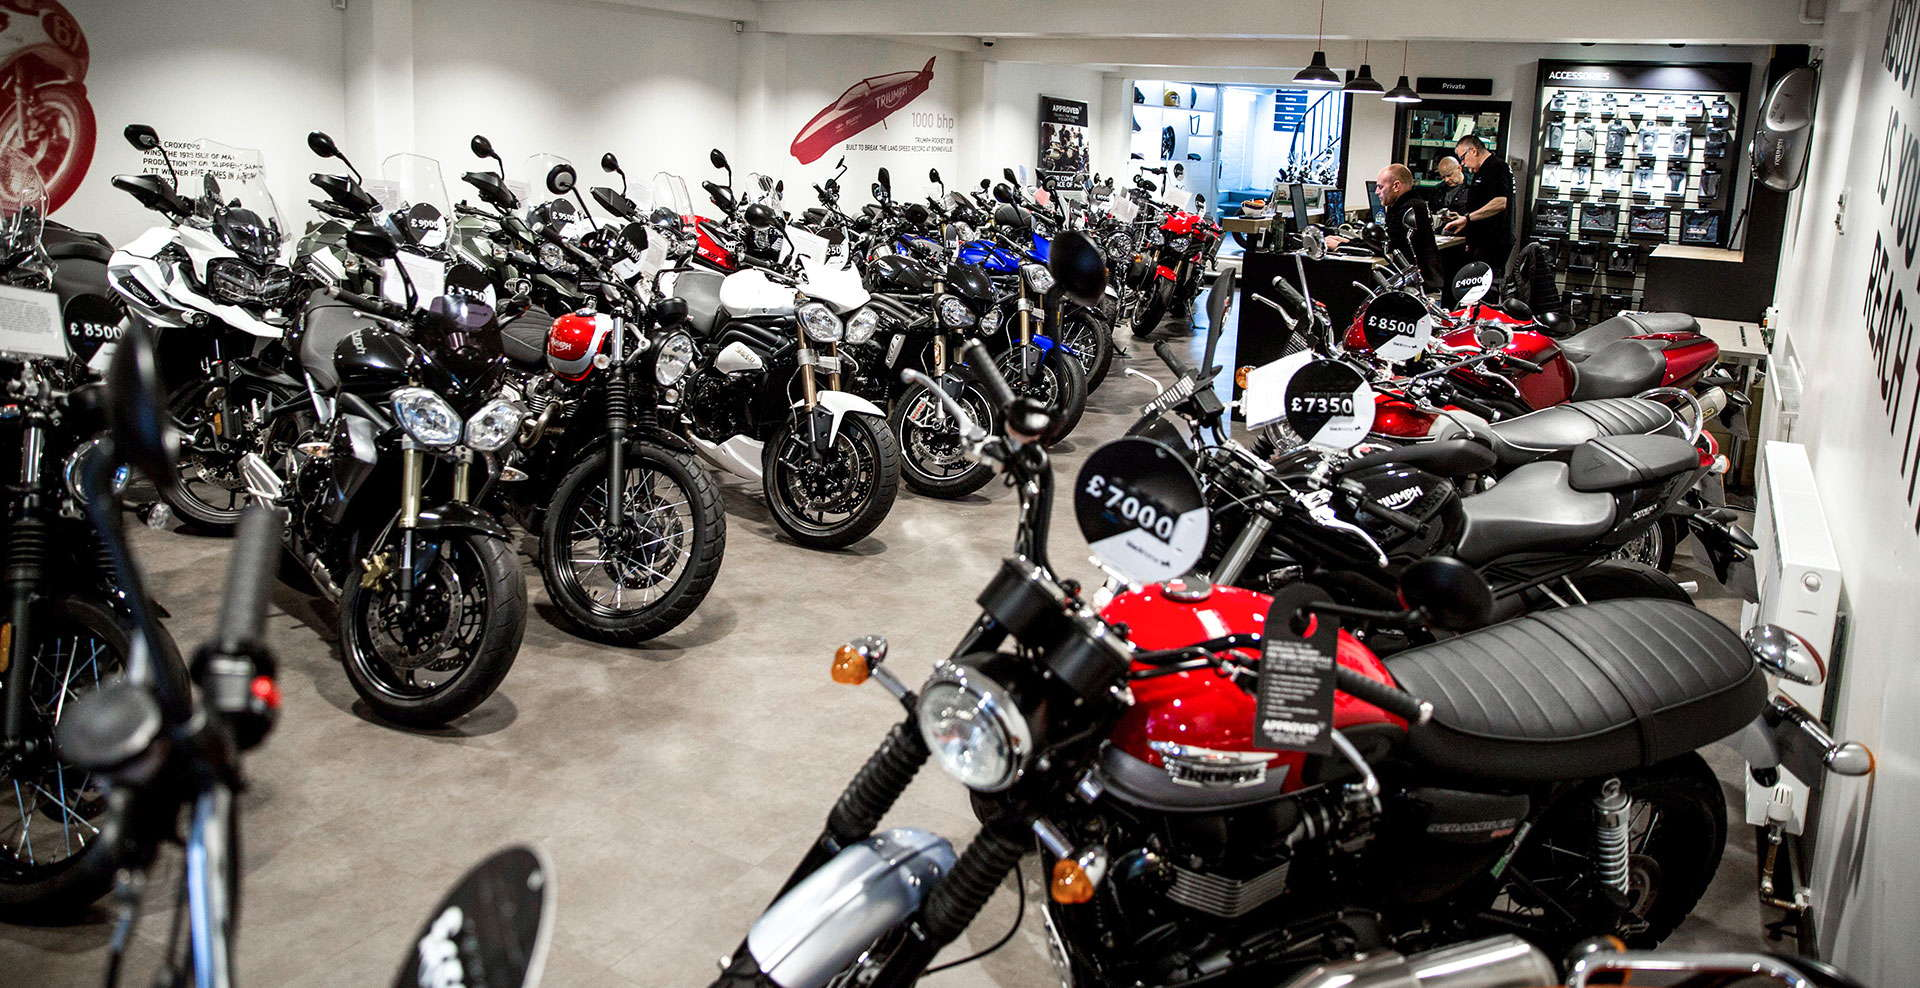 Used bikes in stock